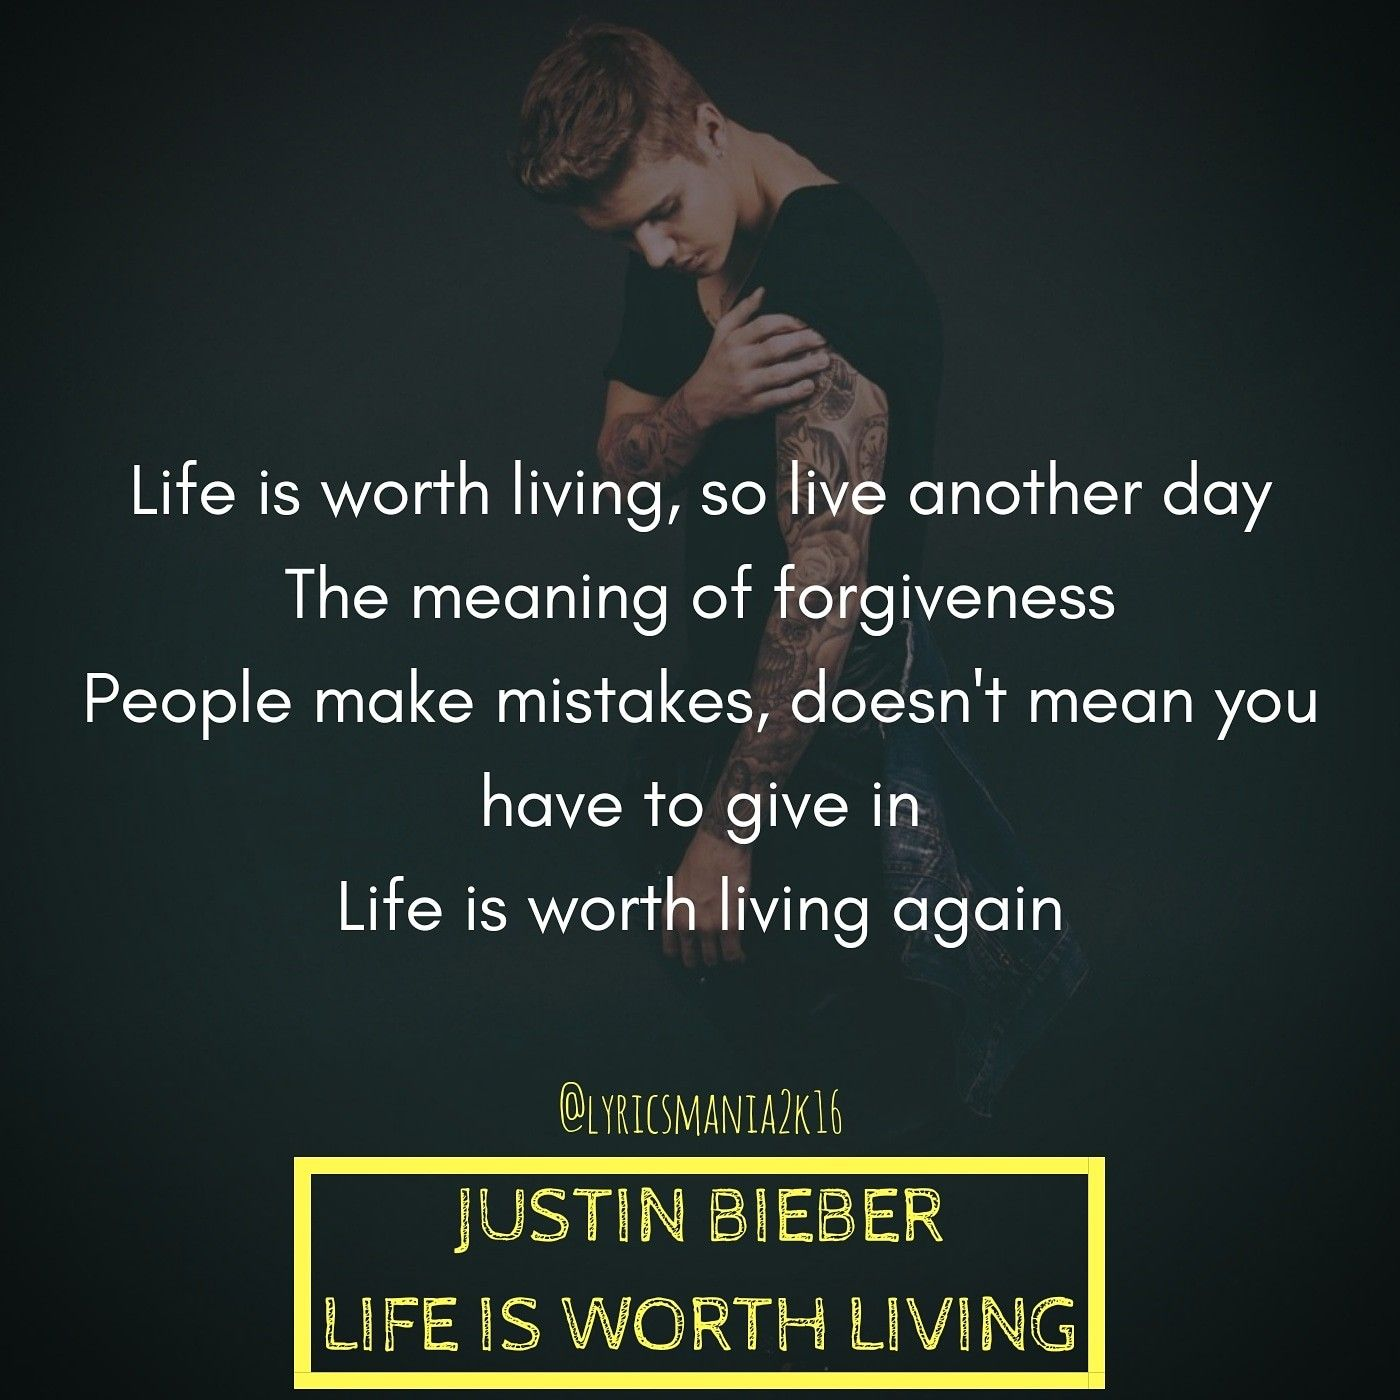 Justin Bieber Life Is Worth Living Justinbieber Lifeisworthliving